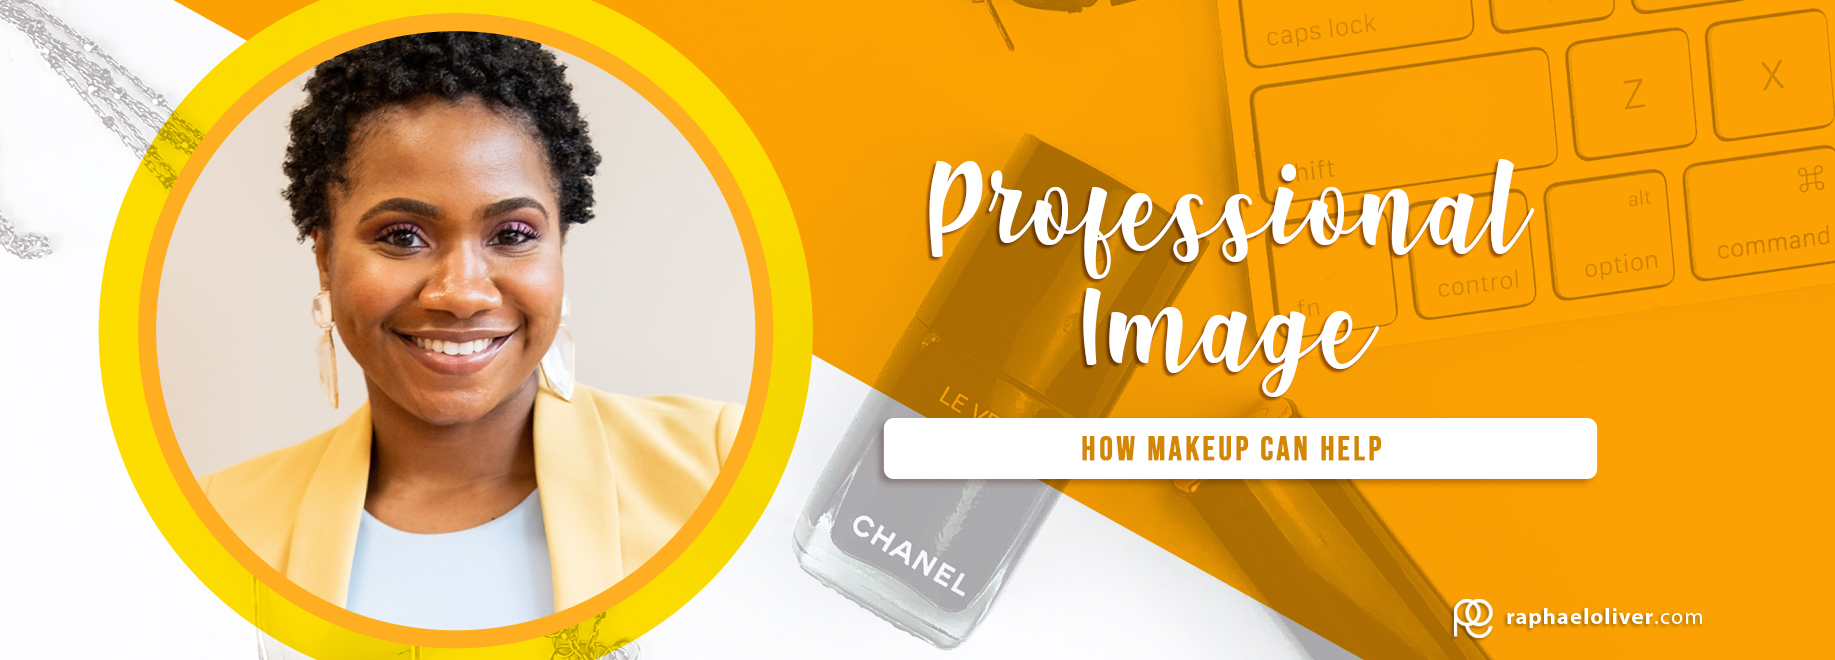 See how makeup can help with professional image and what are the benefits of working with makeup